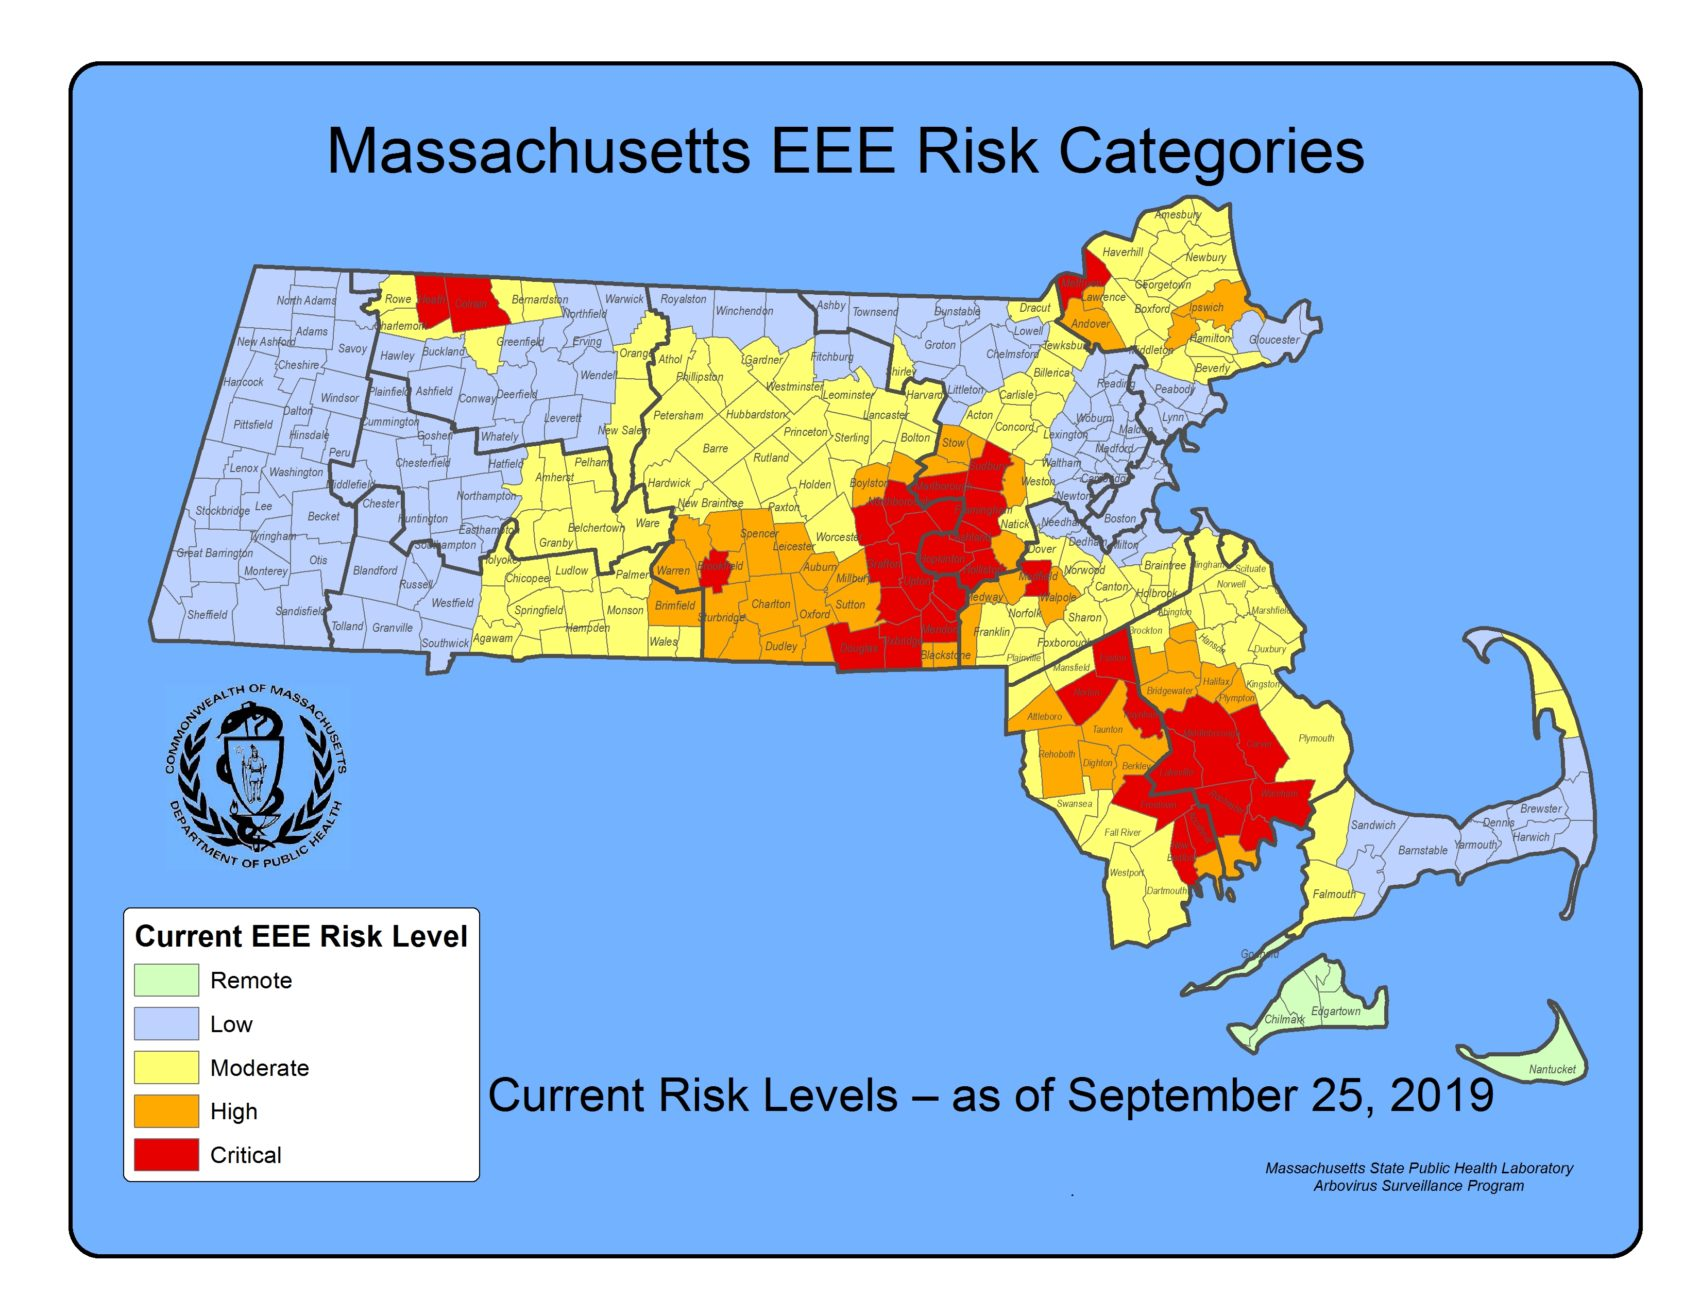 Massachusetts health officials have increased the number of communities at high risk for EEE